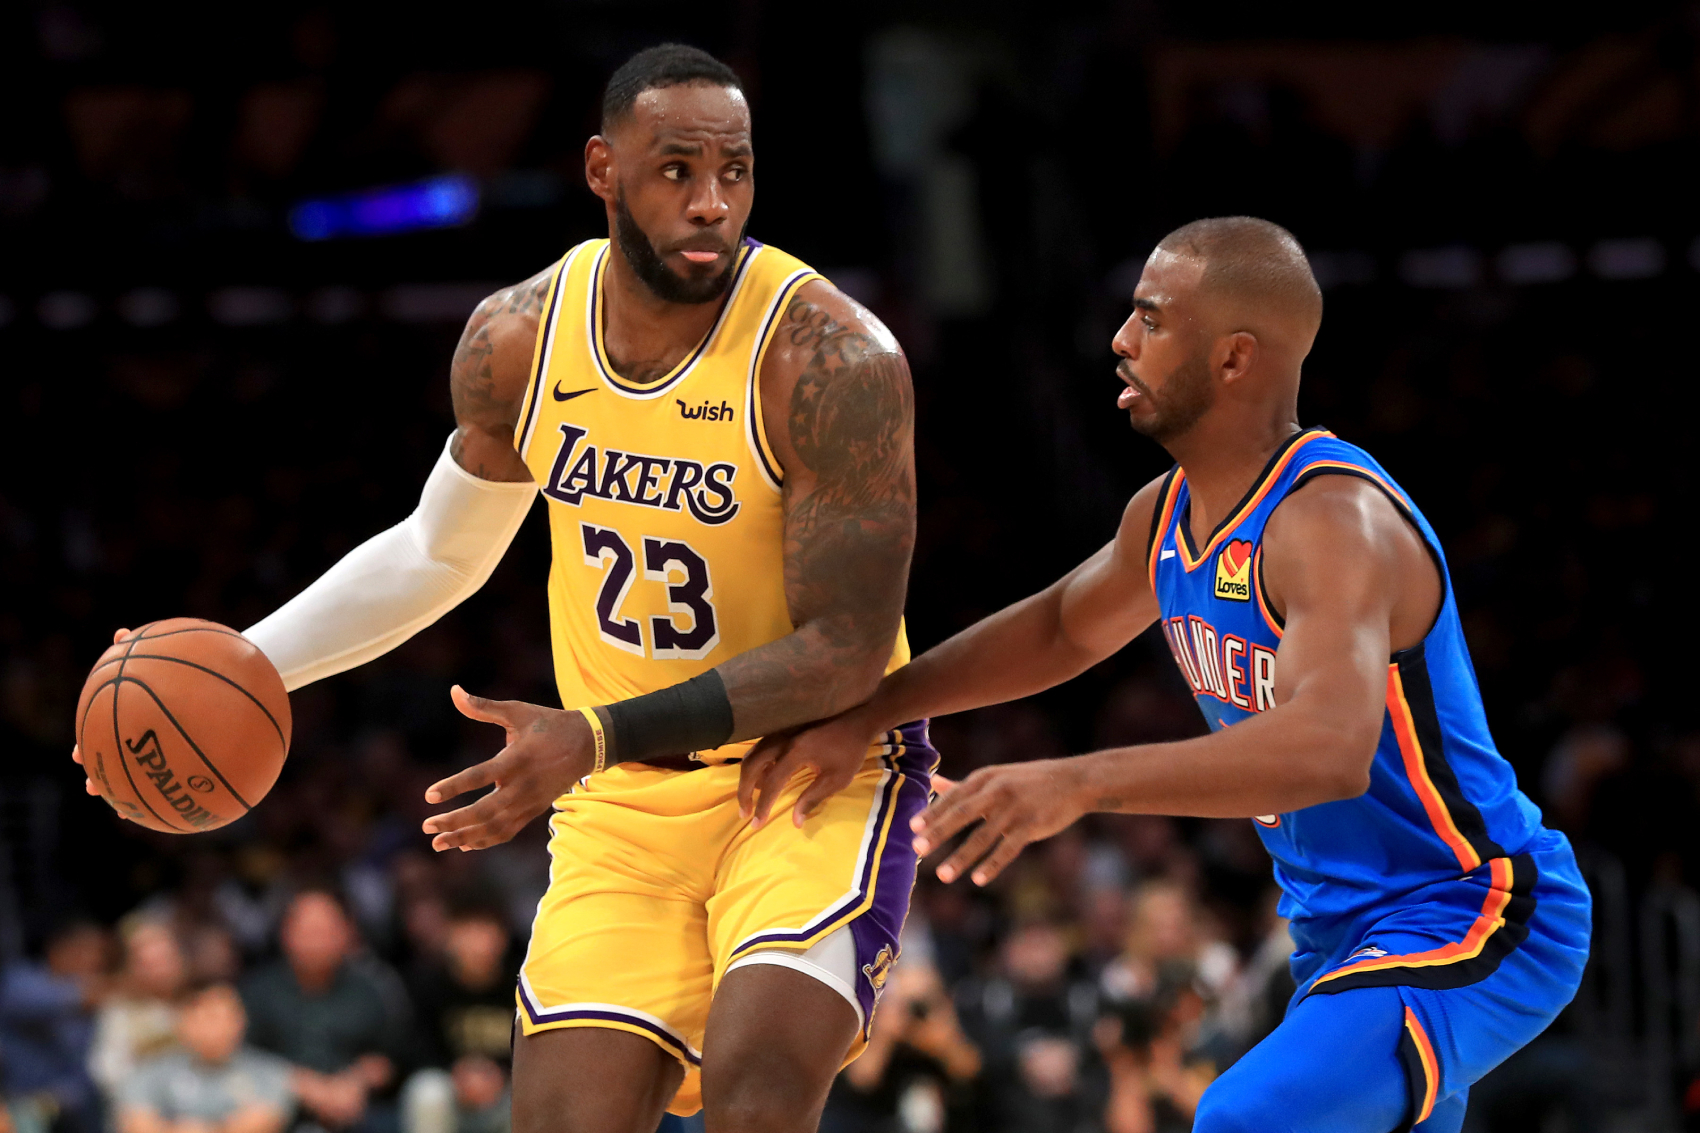 Chris Paul is playing for the Phoenix Suns in 2020-21. However, he could still play a role in the LA Lakers winning another championship.